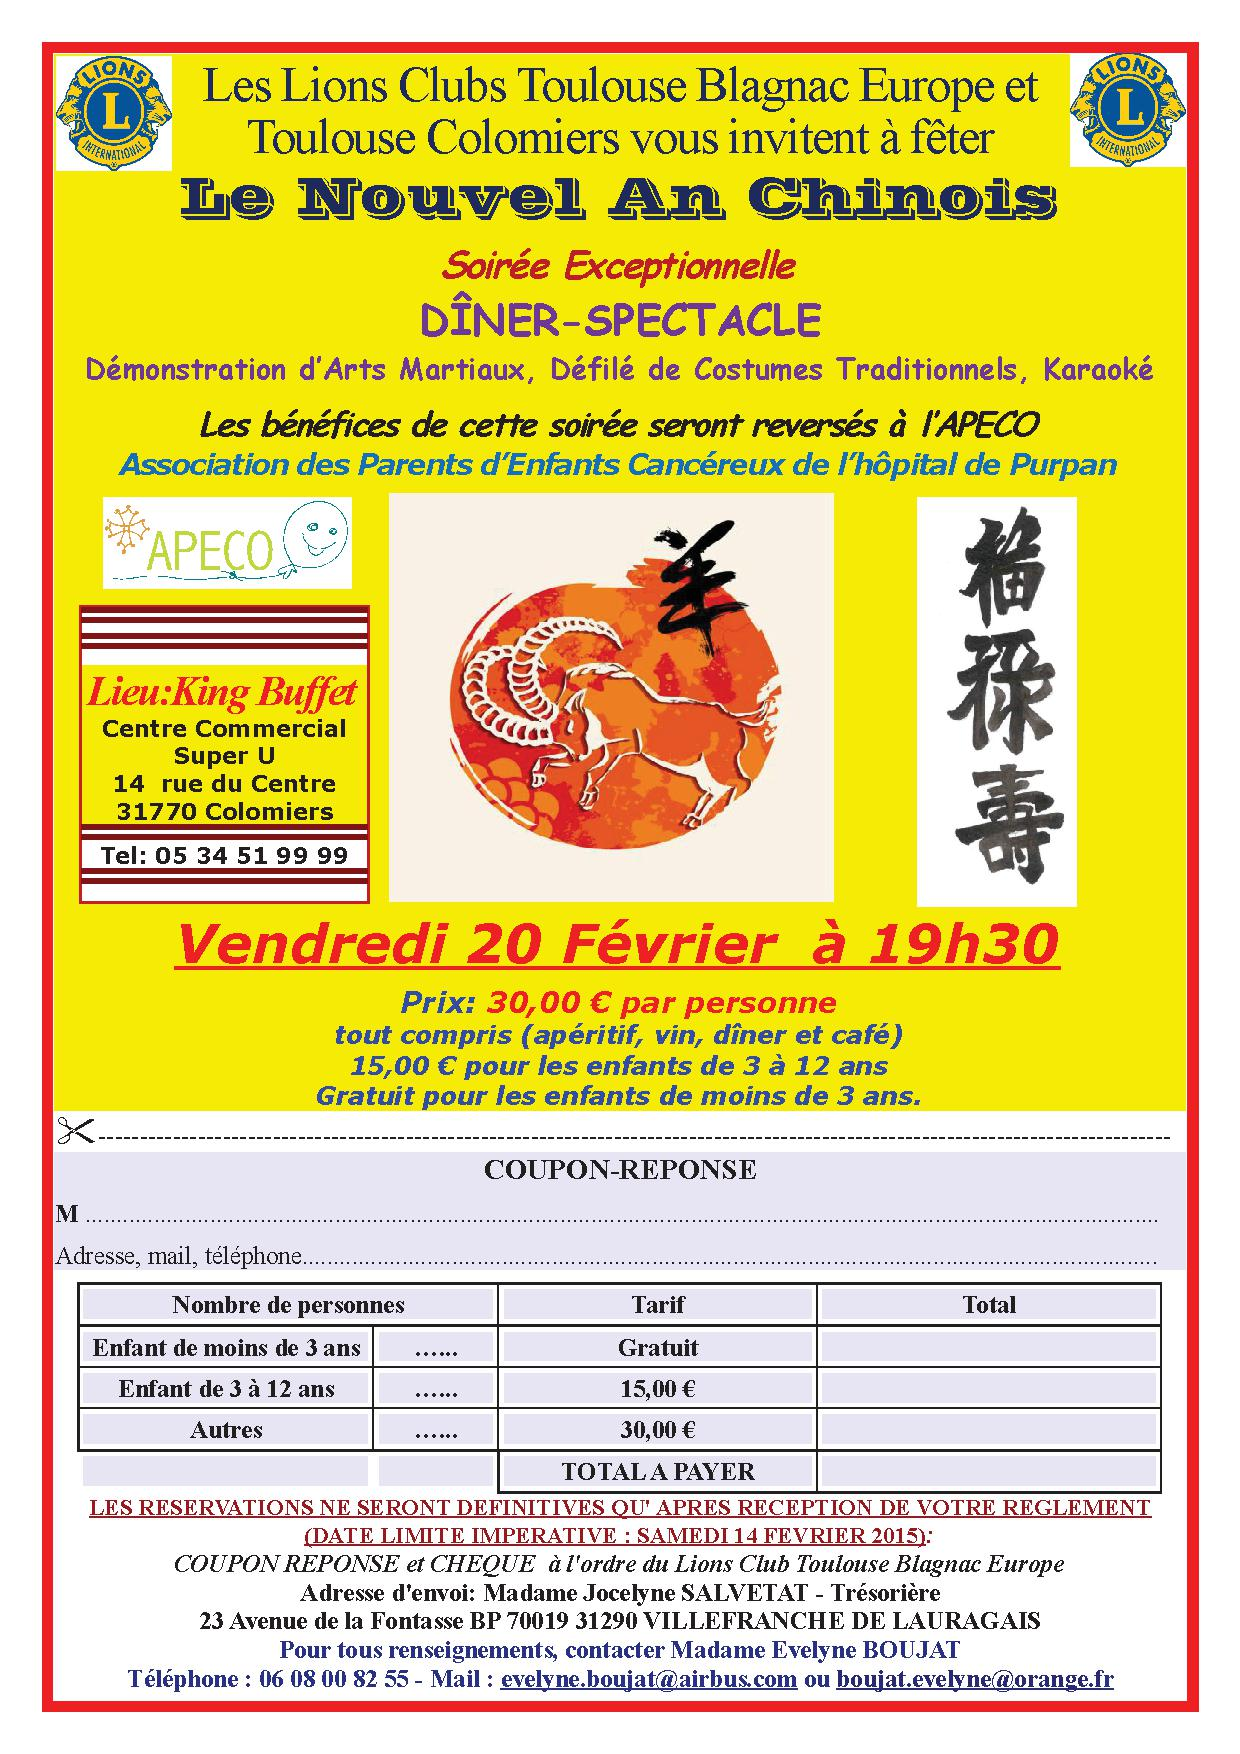 RESERVATIONS NOUVEL AN CHINOIS 2015 avec coupon